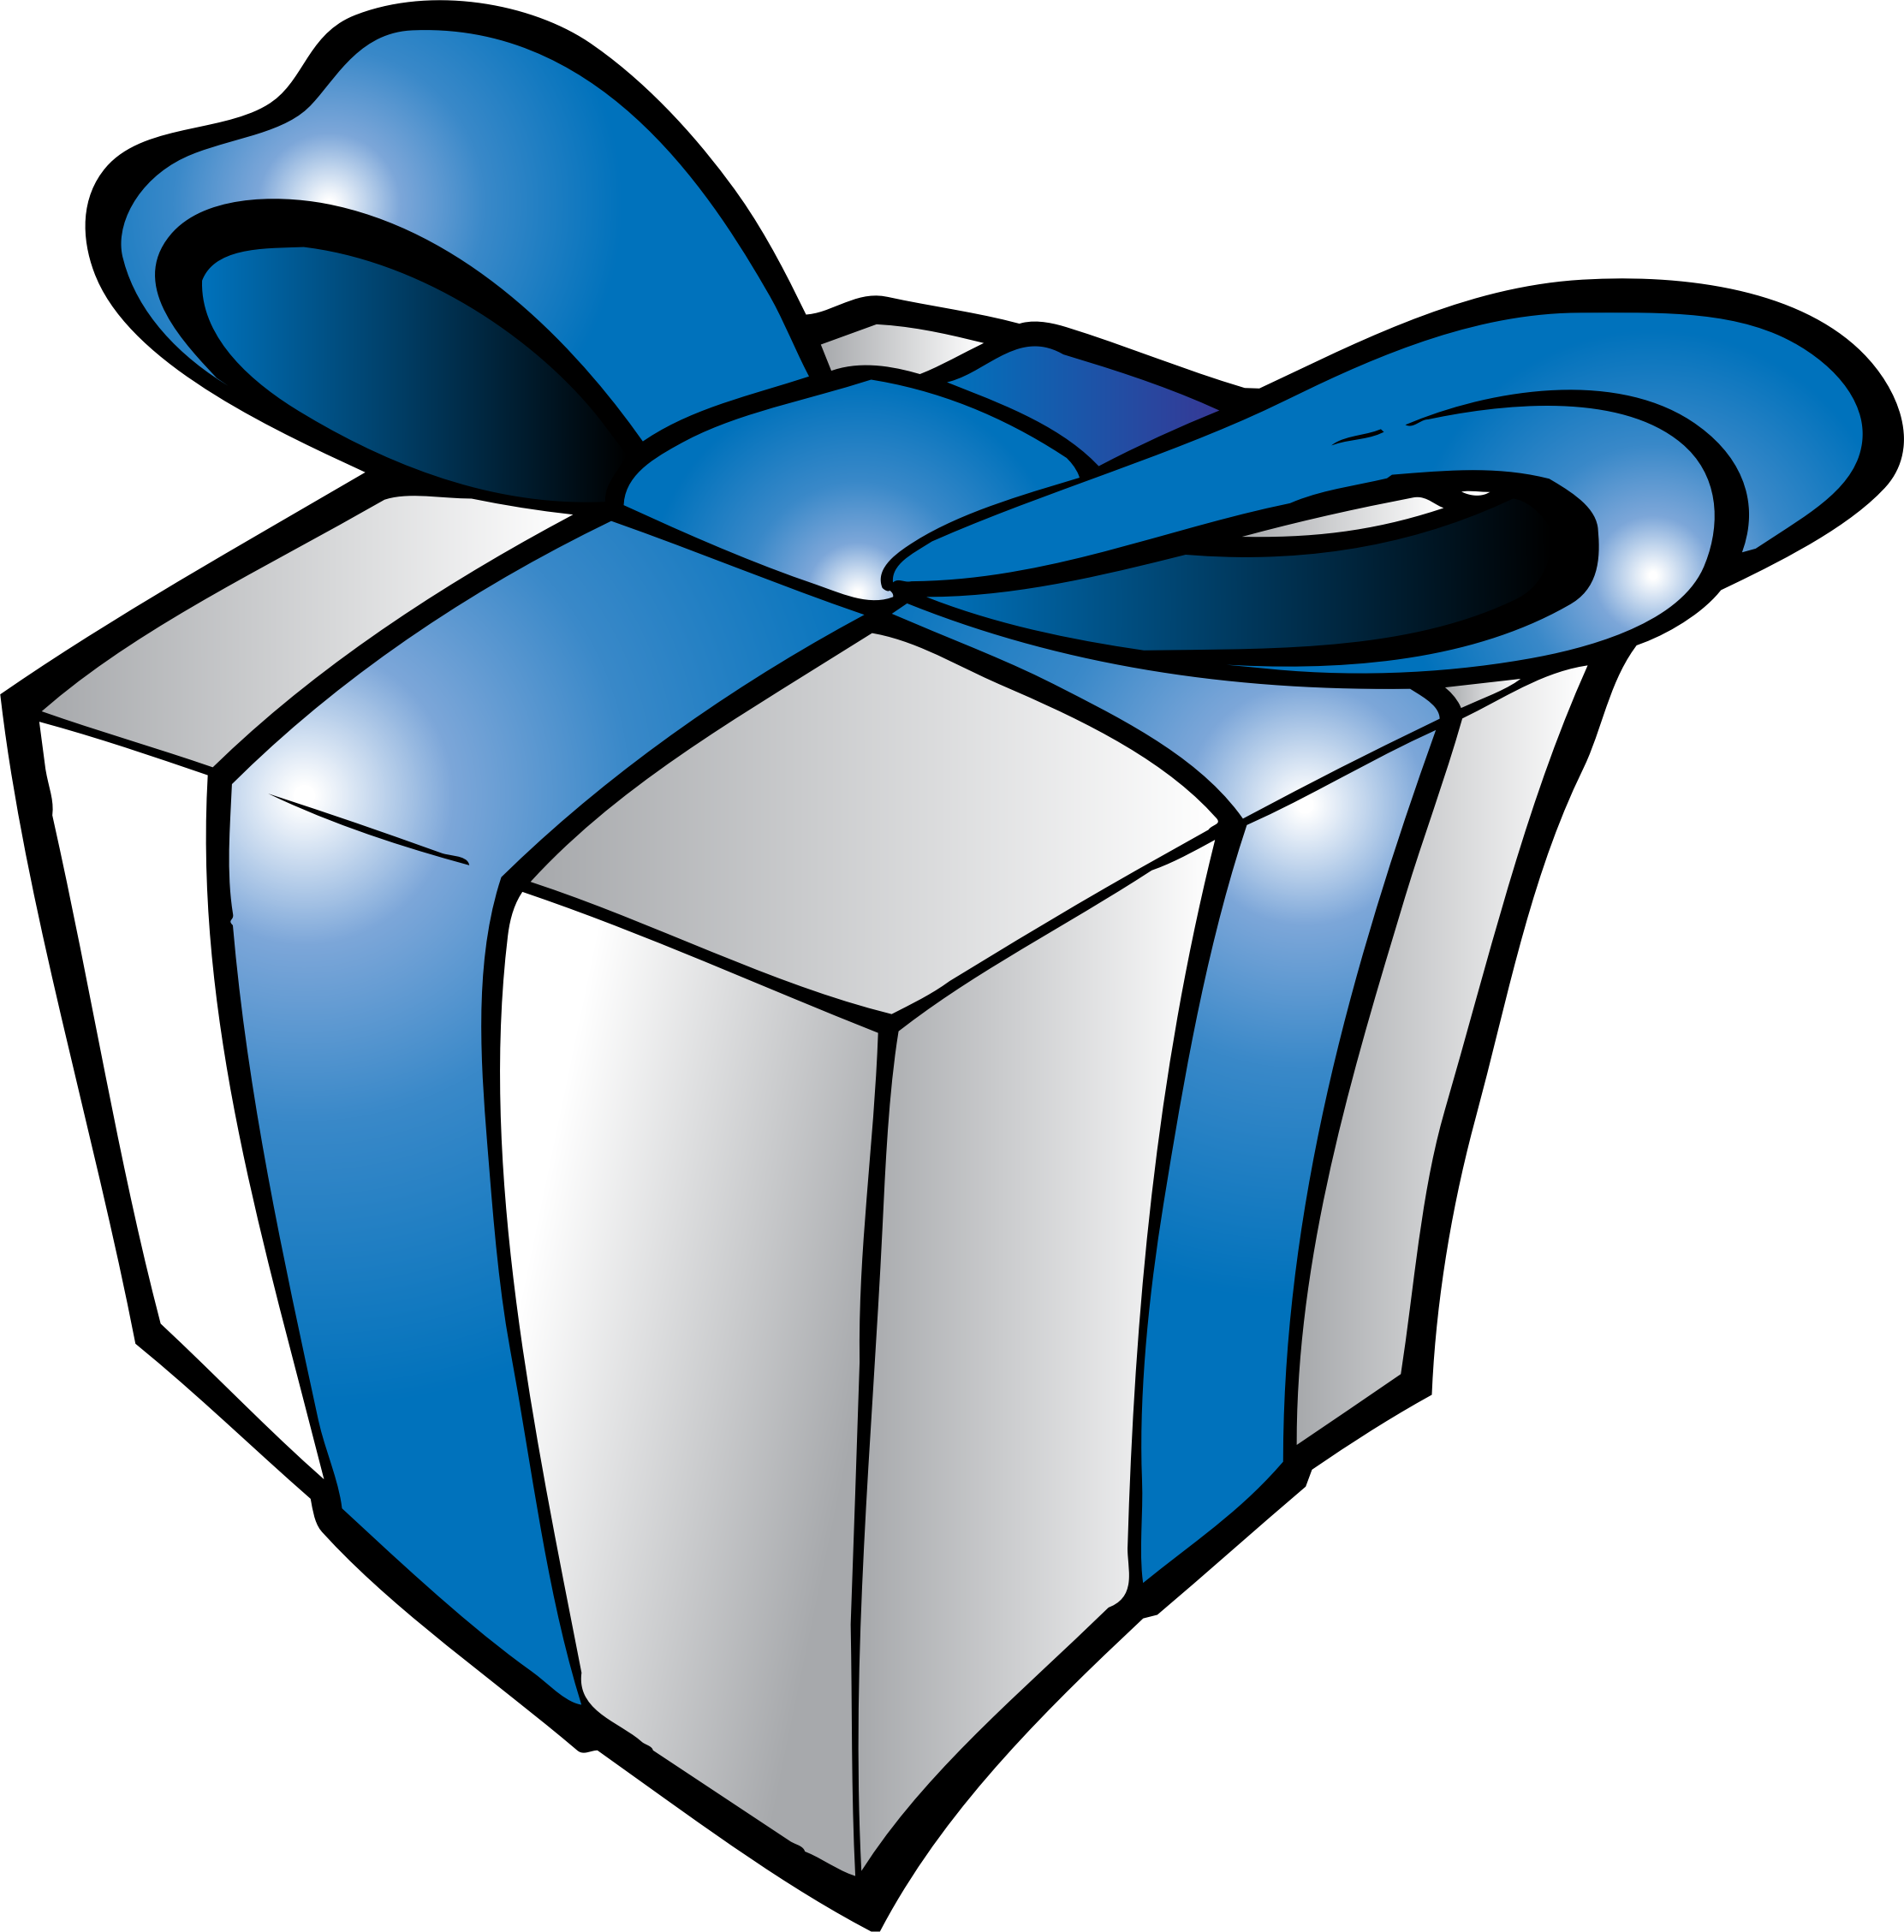 Gift clipart clip art.  making images